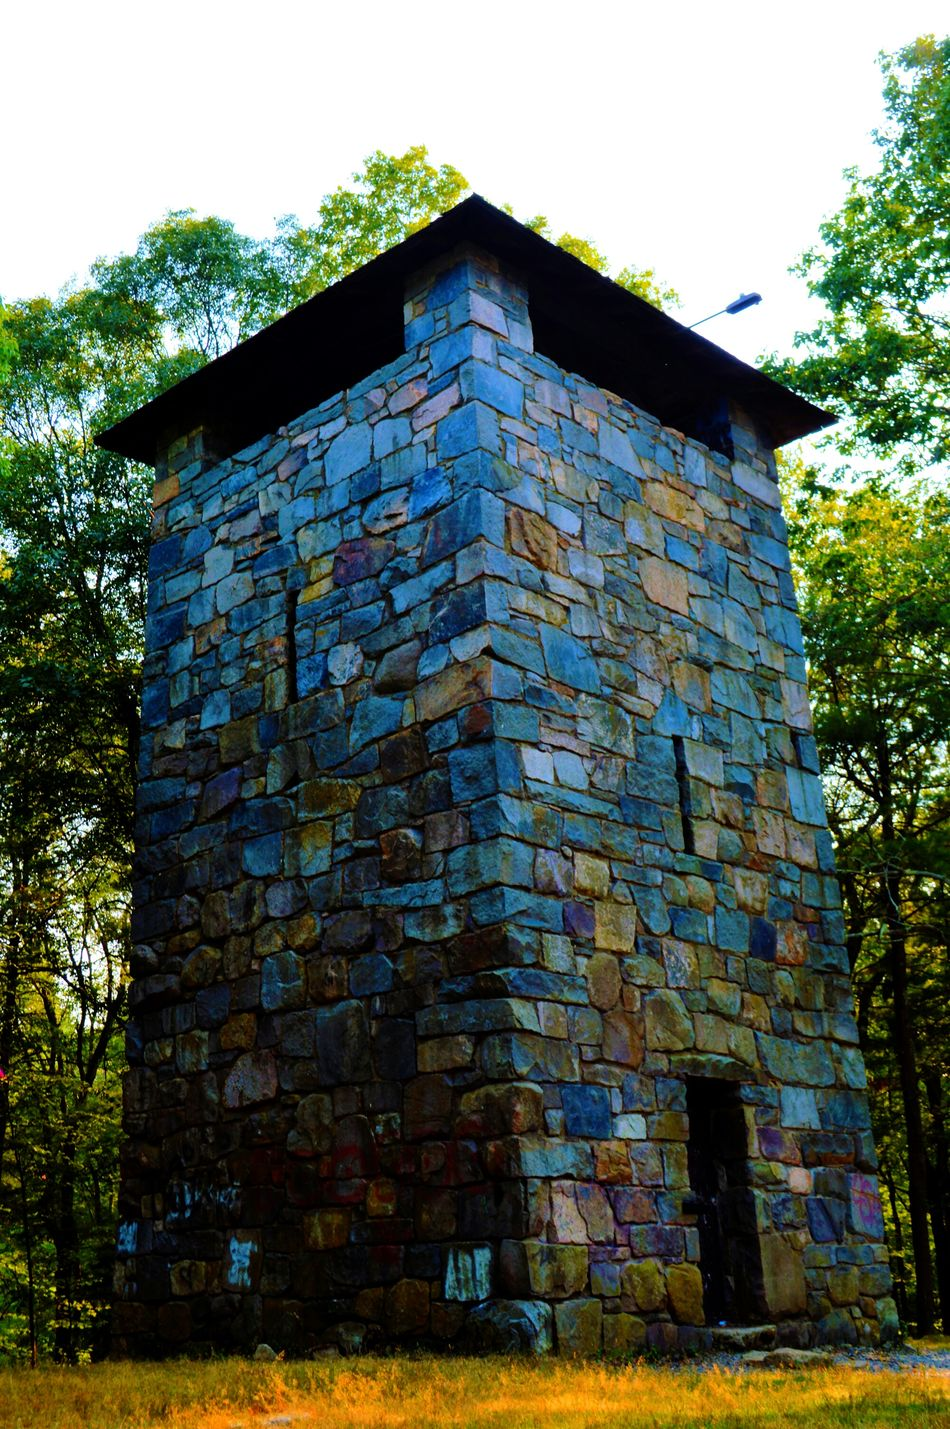 The Patchwork Watch Tower. Forests Nikon D3200 Photooftheday Photography Hiking Nature Adventure Check This Out The Blue Hills Nikon Taking Photos